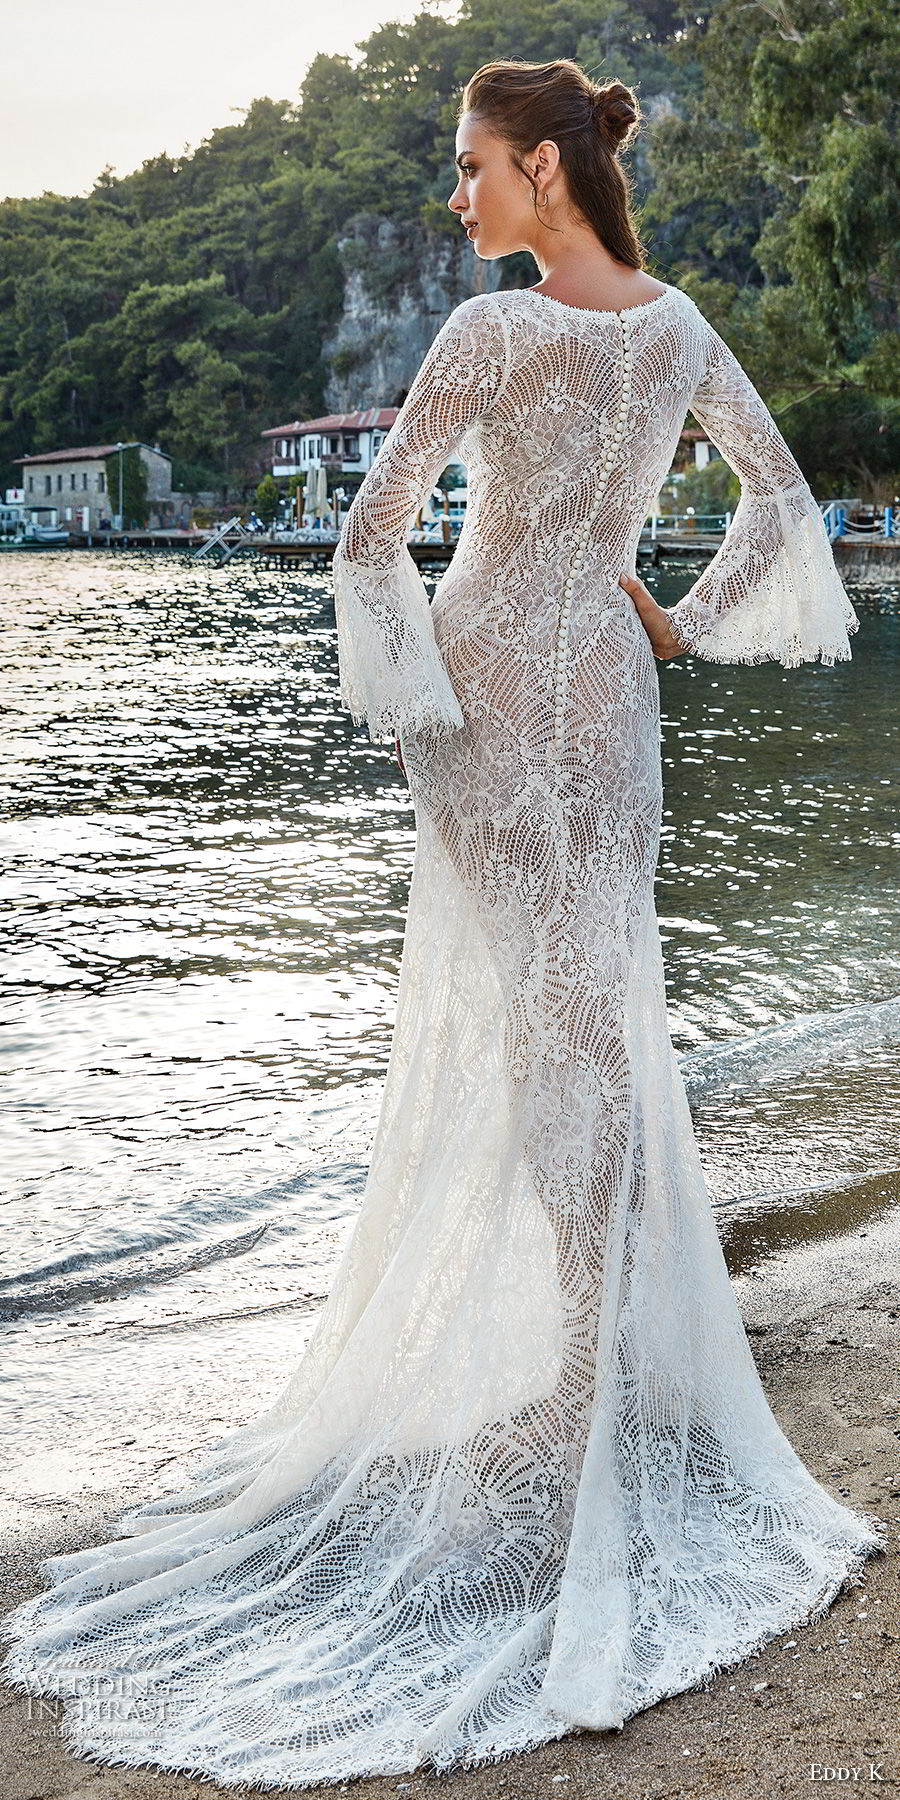 eddy k 2018 bridal long bell sleeves bateau neck full embellishment elegant lace fit and flare wedding dress lace back sweep train (1) bv